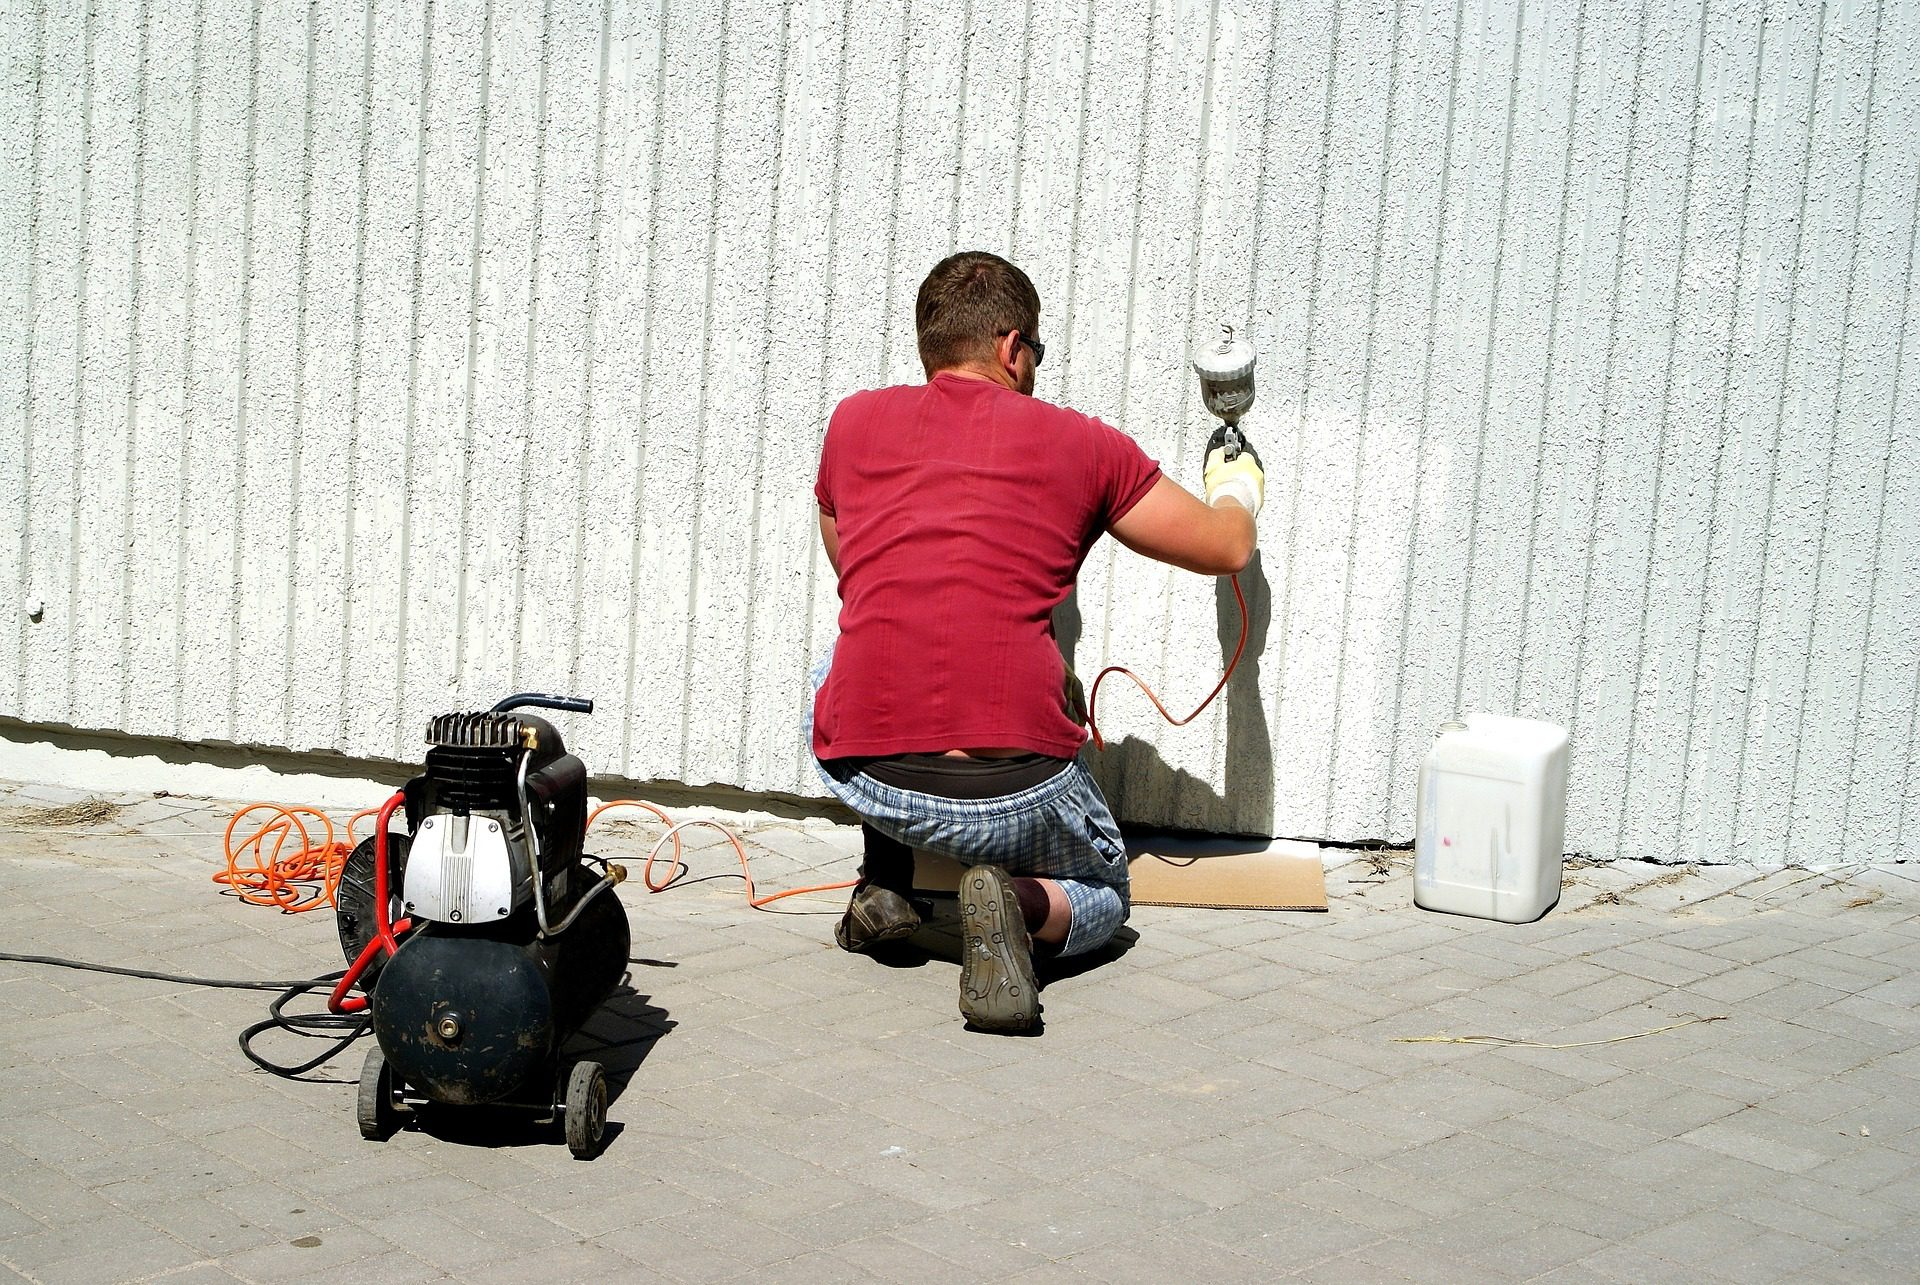 5 Tips When Choosing an Airless Paint Sprayer